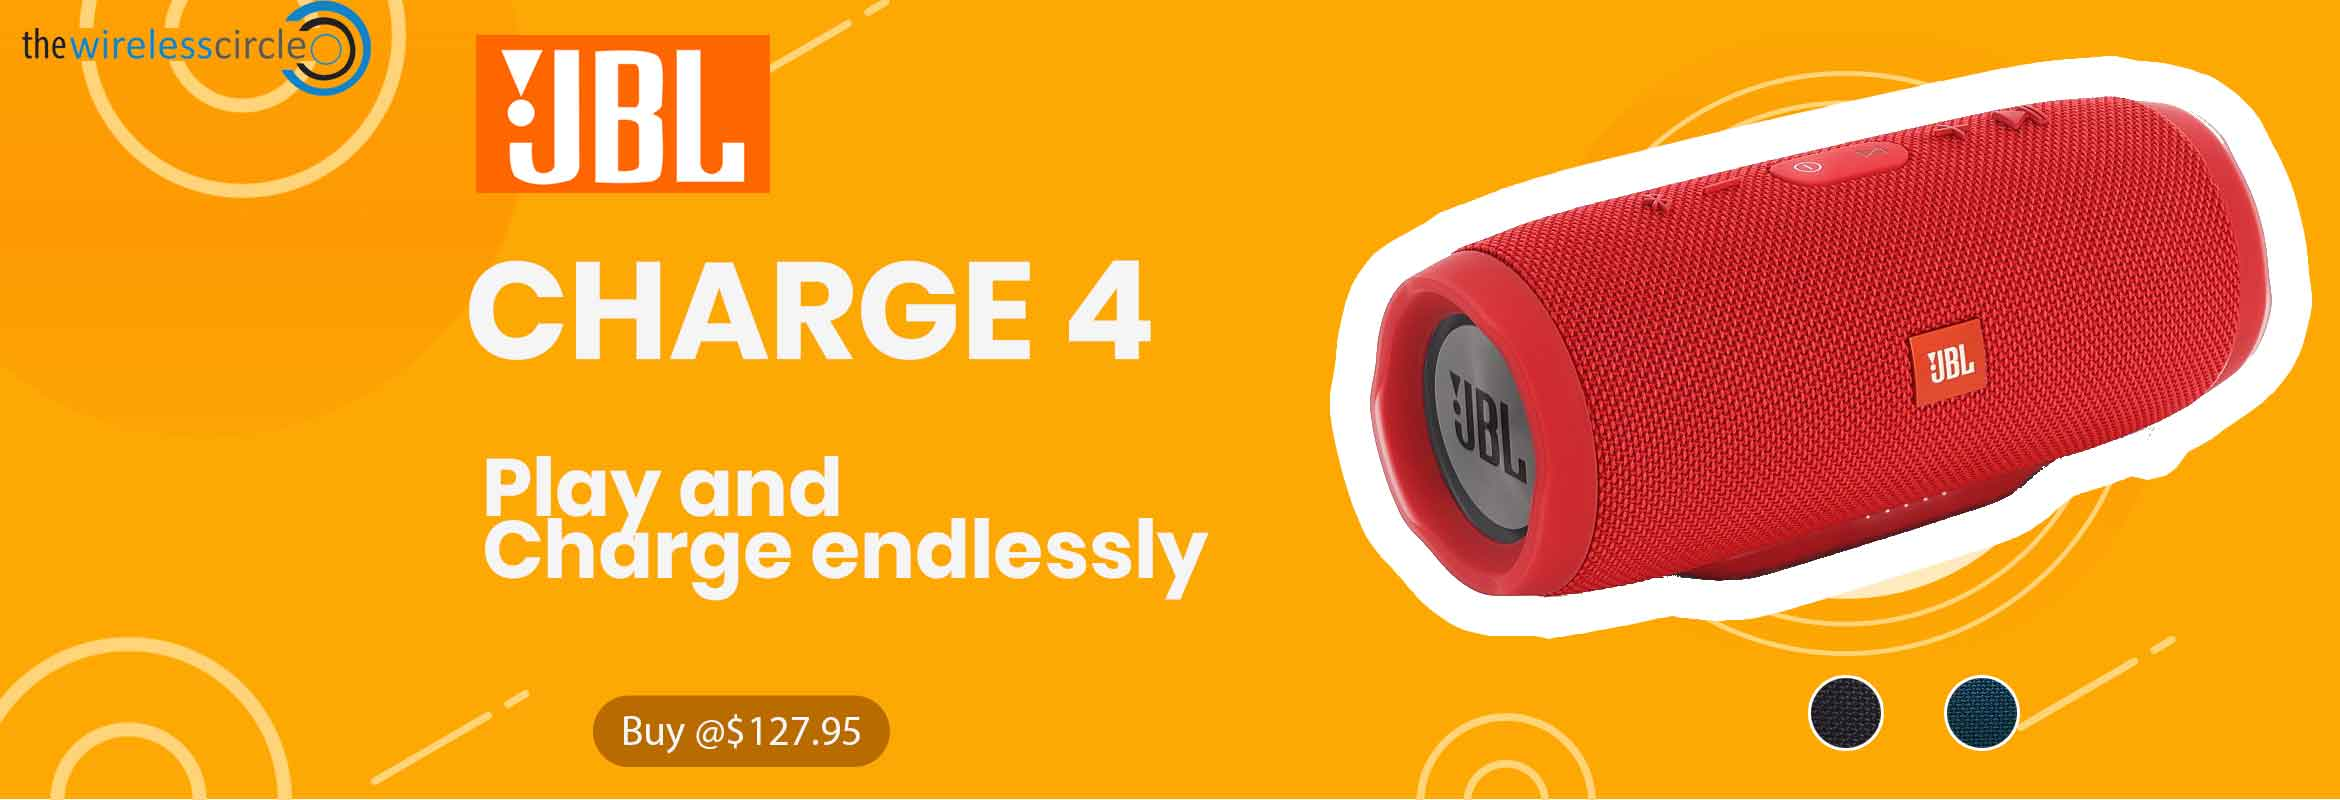 JBL Charge 4 @129.95 + 5% Additional discount.